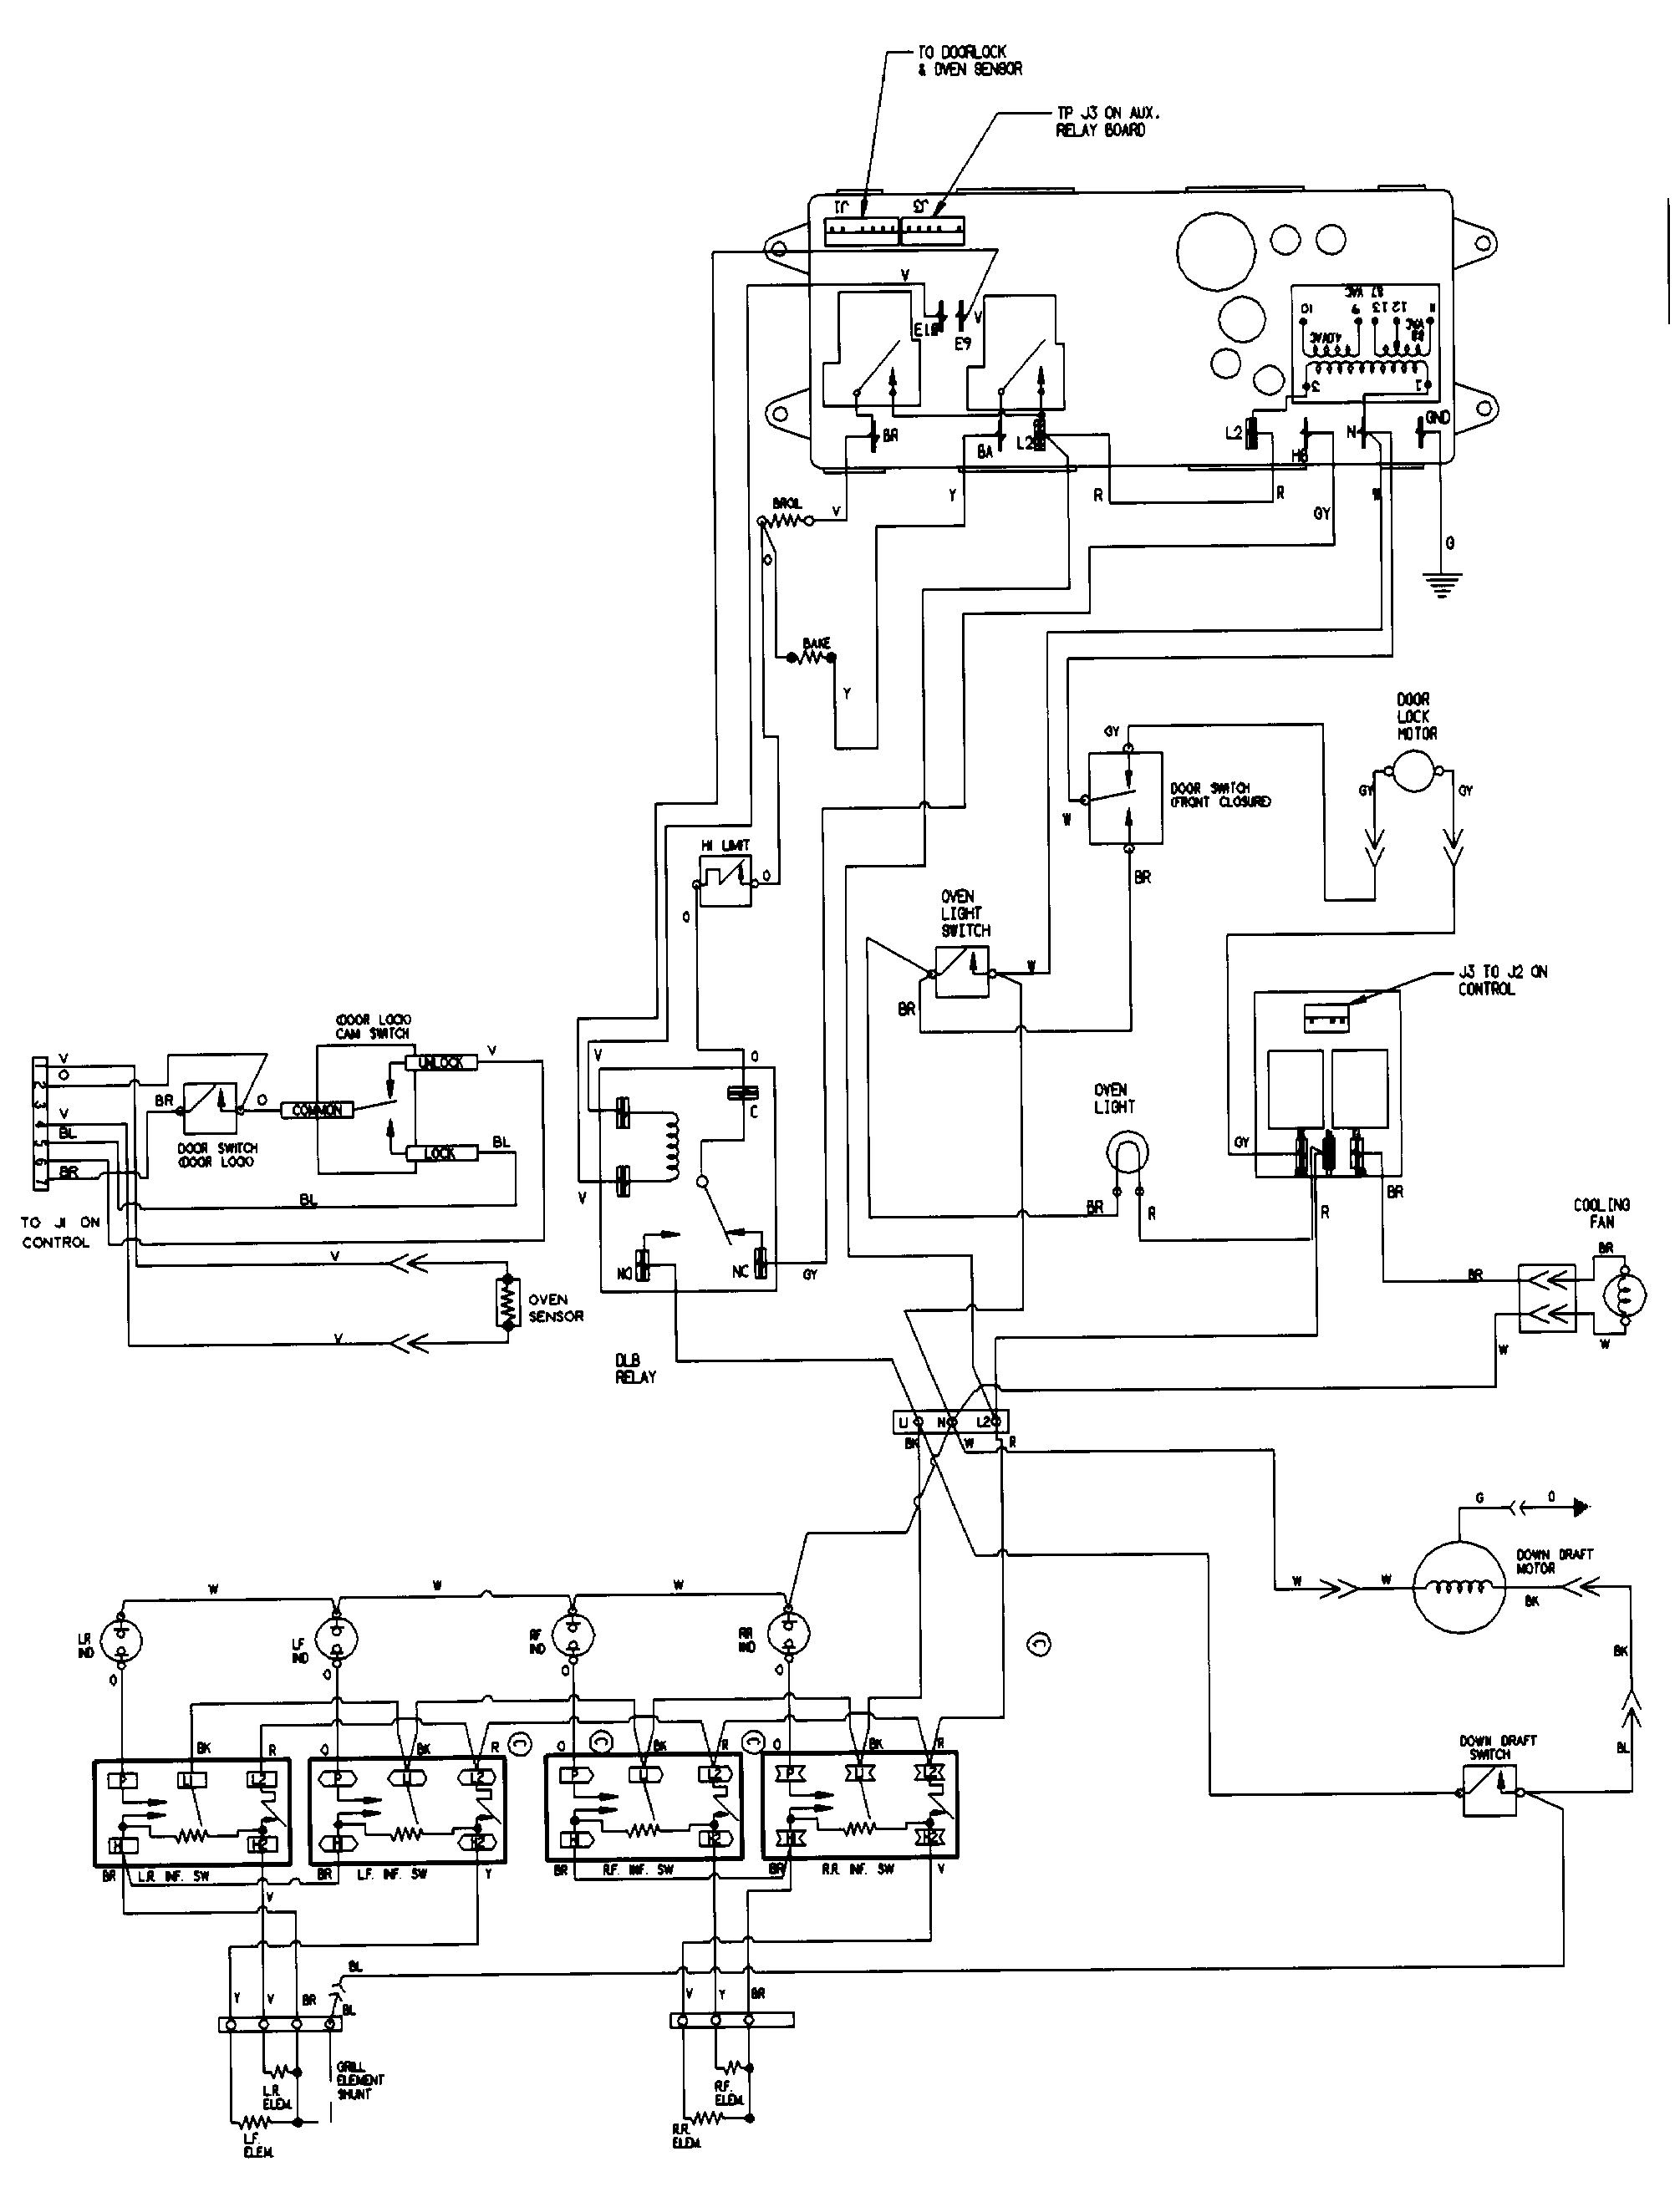 Imperial Fryer Wiring Diagram